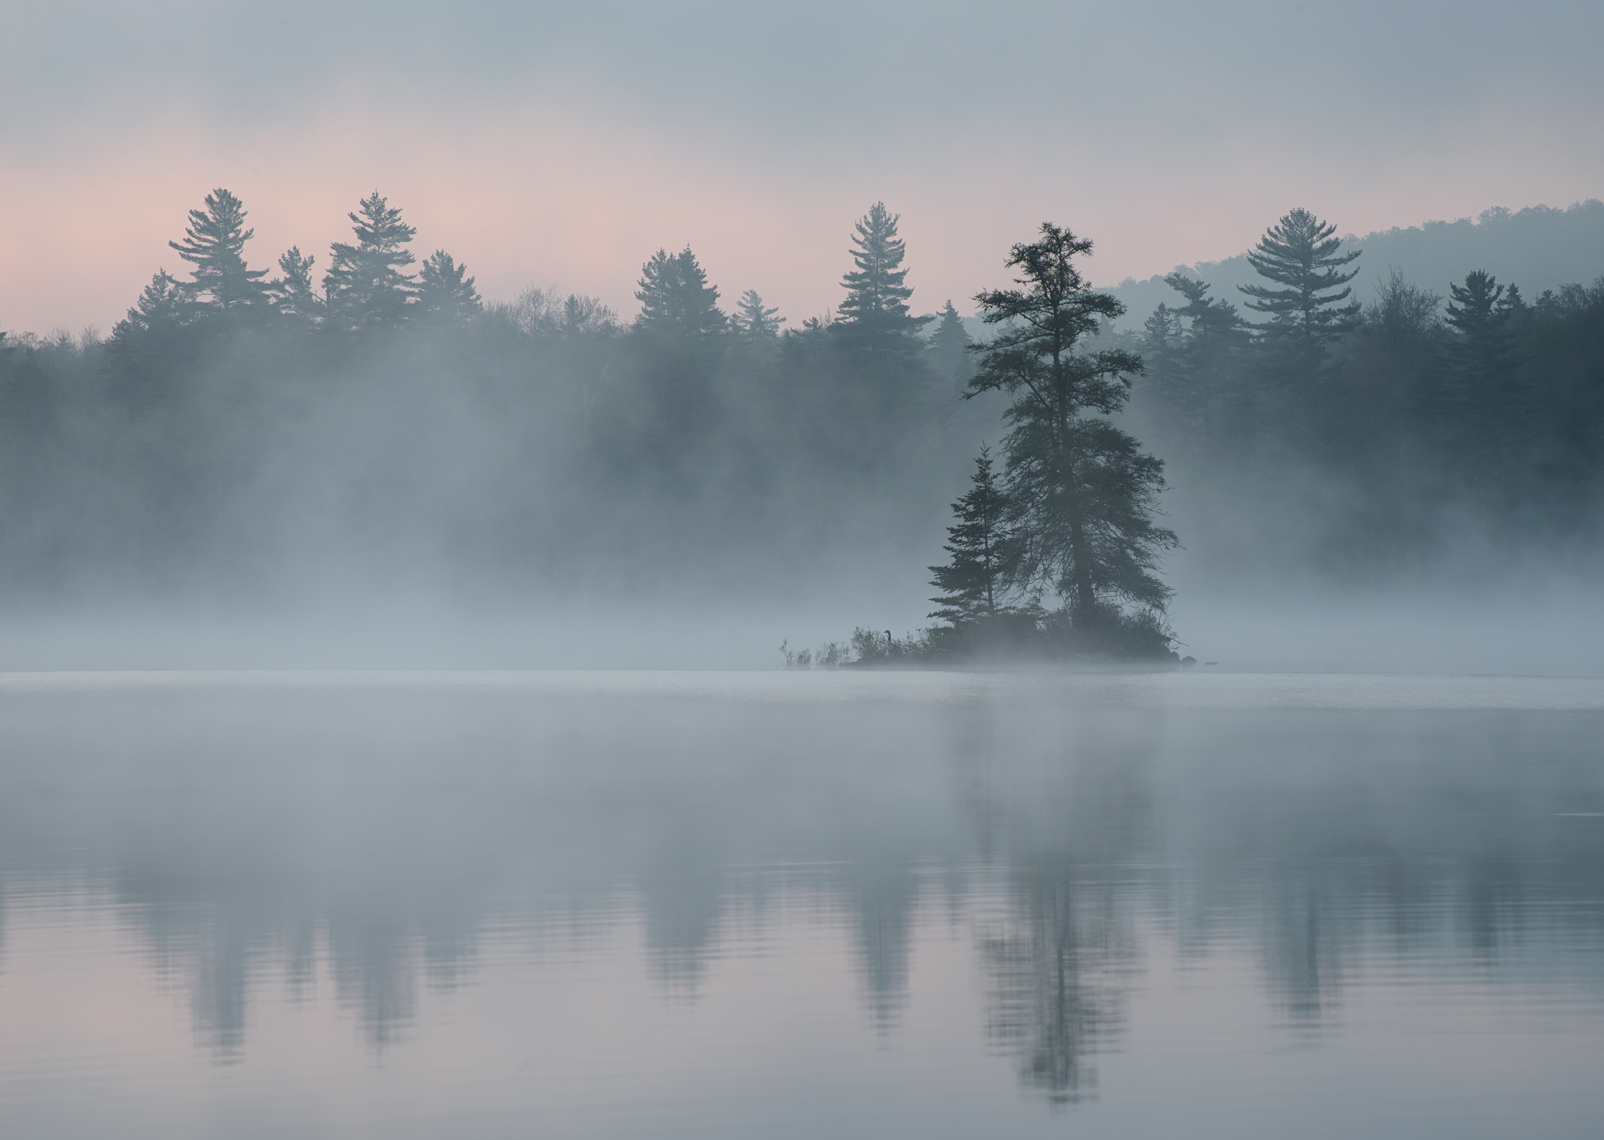 Island in Mist